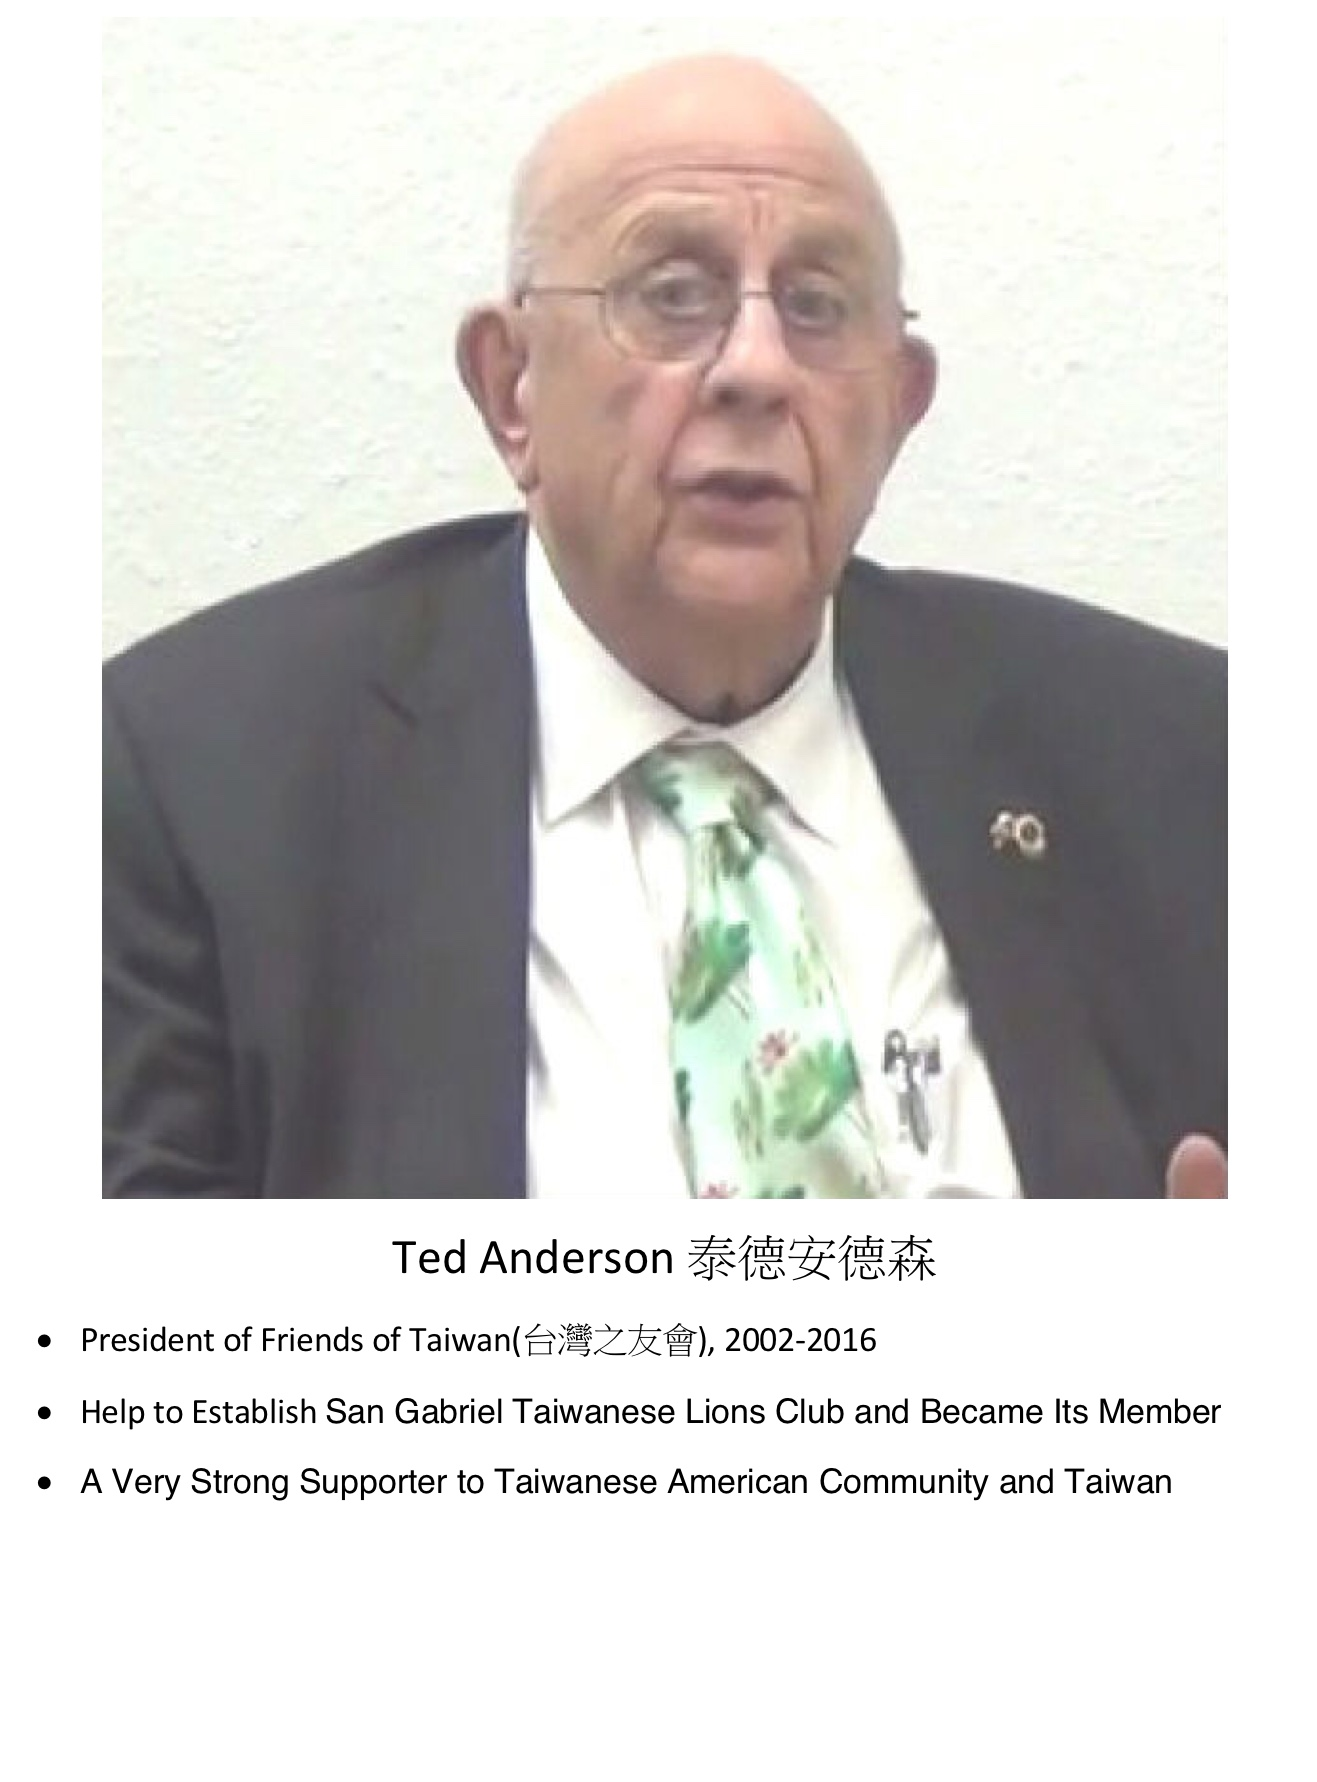 271. Ted Anderson 泰德安德森